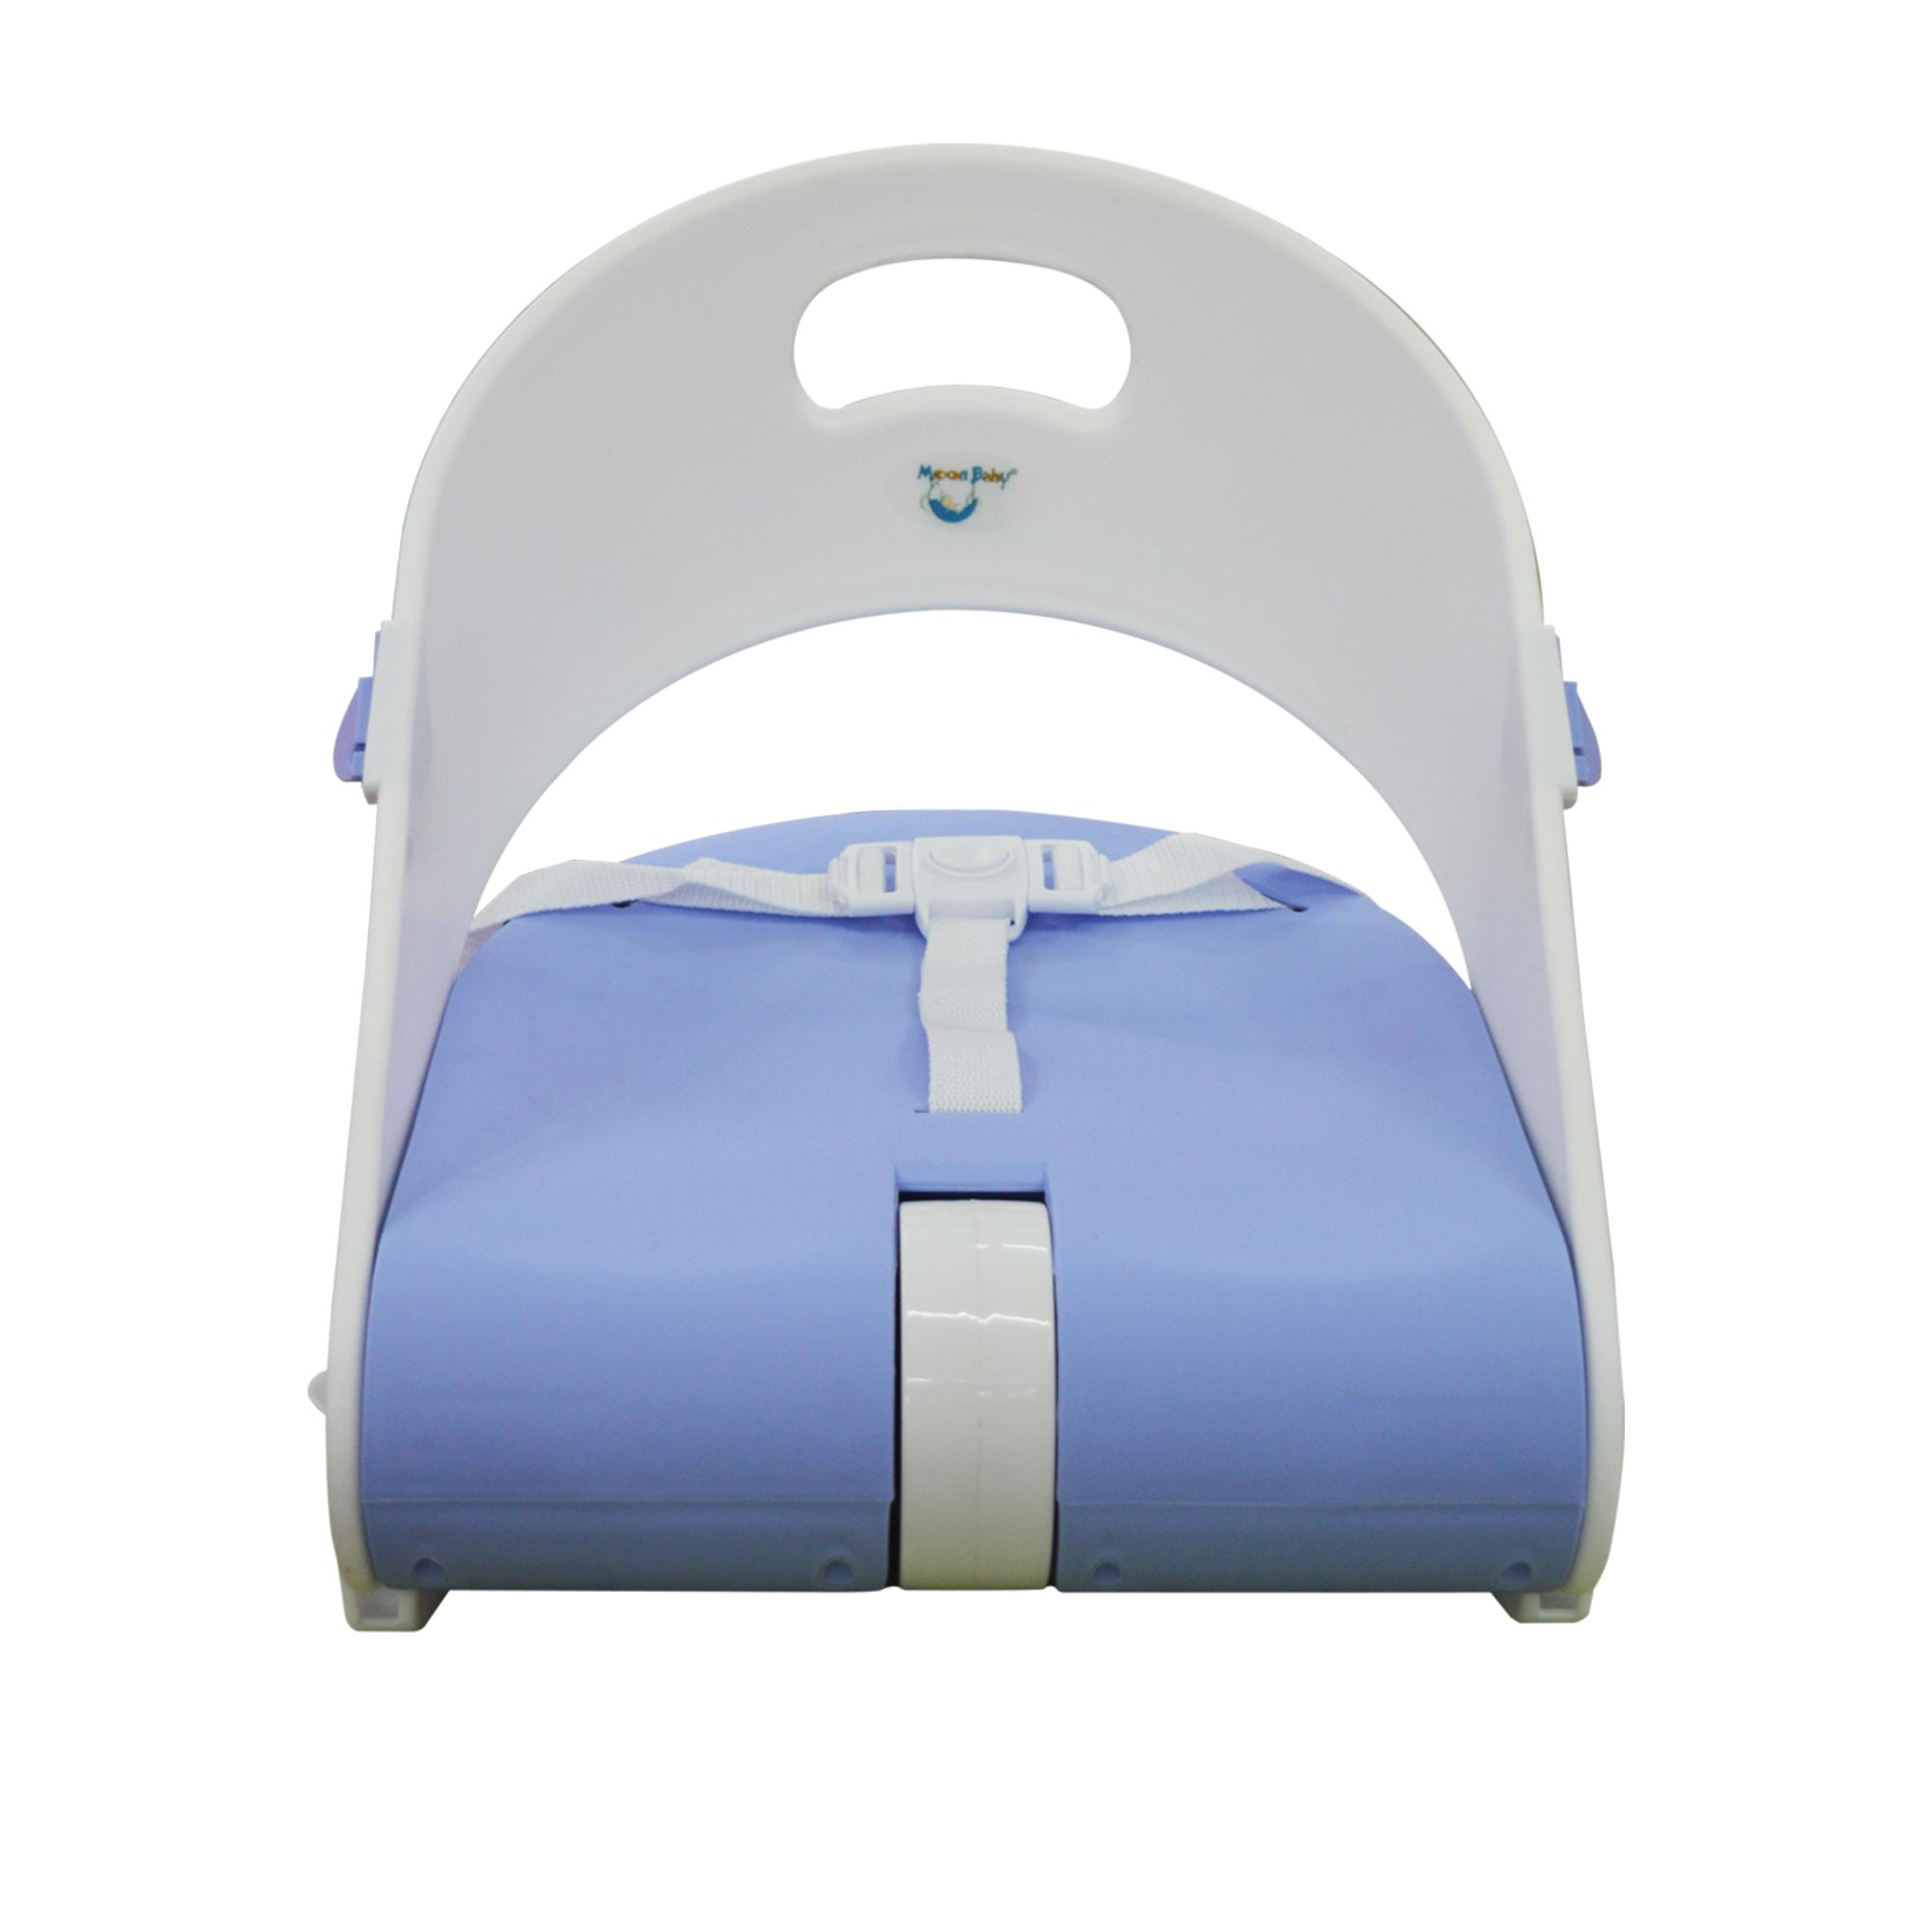 Booster High Chair Seat Moonbaby Booster Seat Mb 511 Light Blue